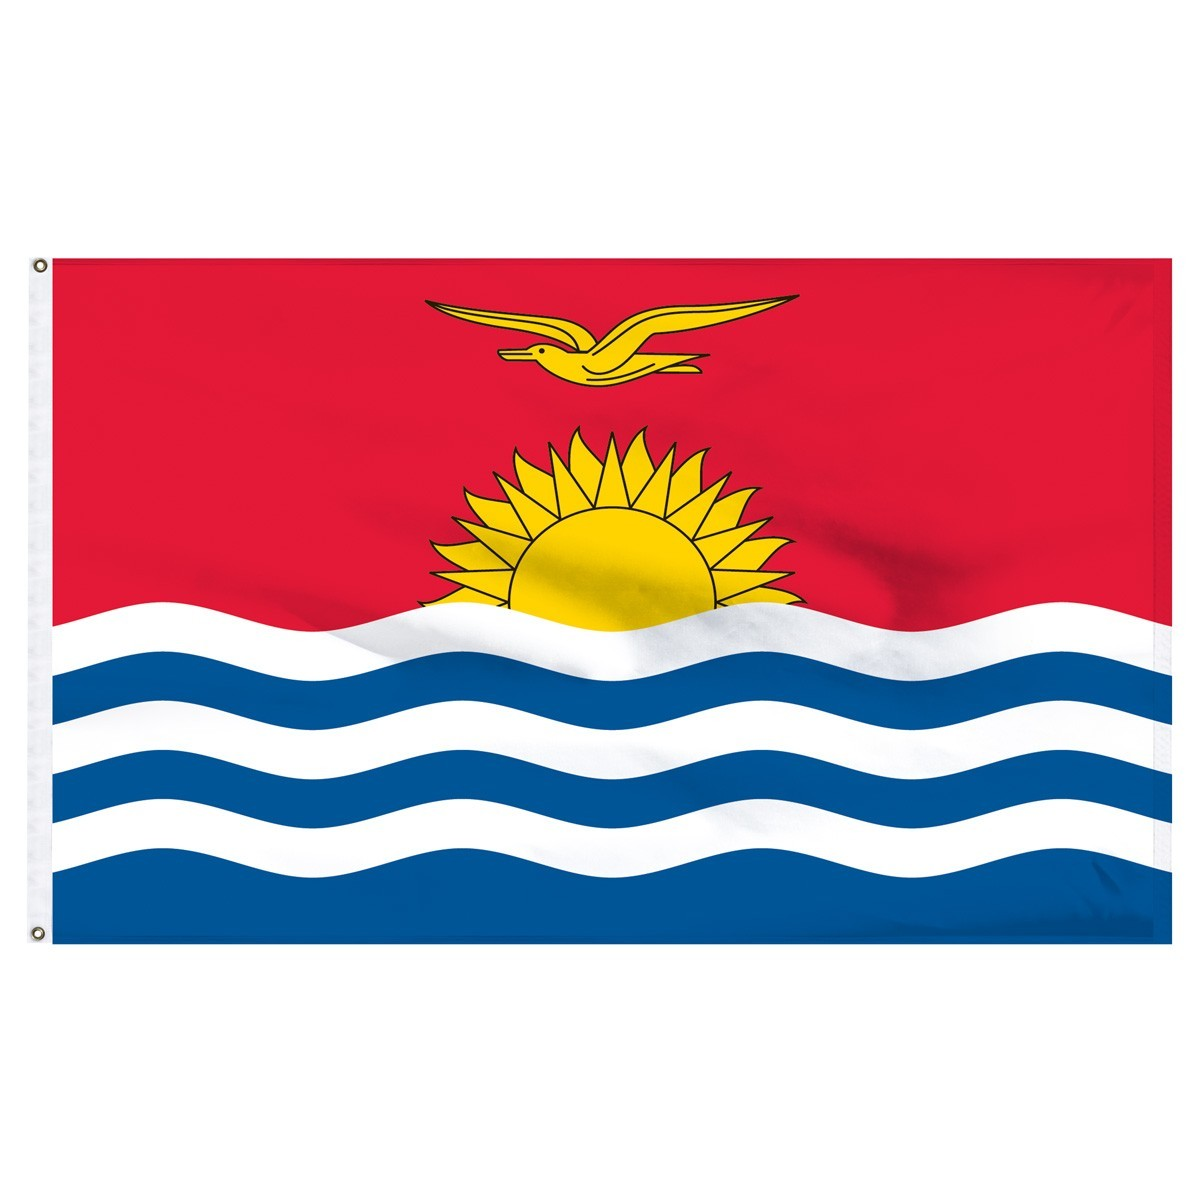 Kiribati 5' x 8' Outdoor Nylon Flag